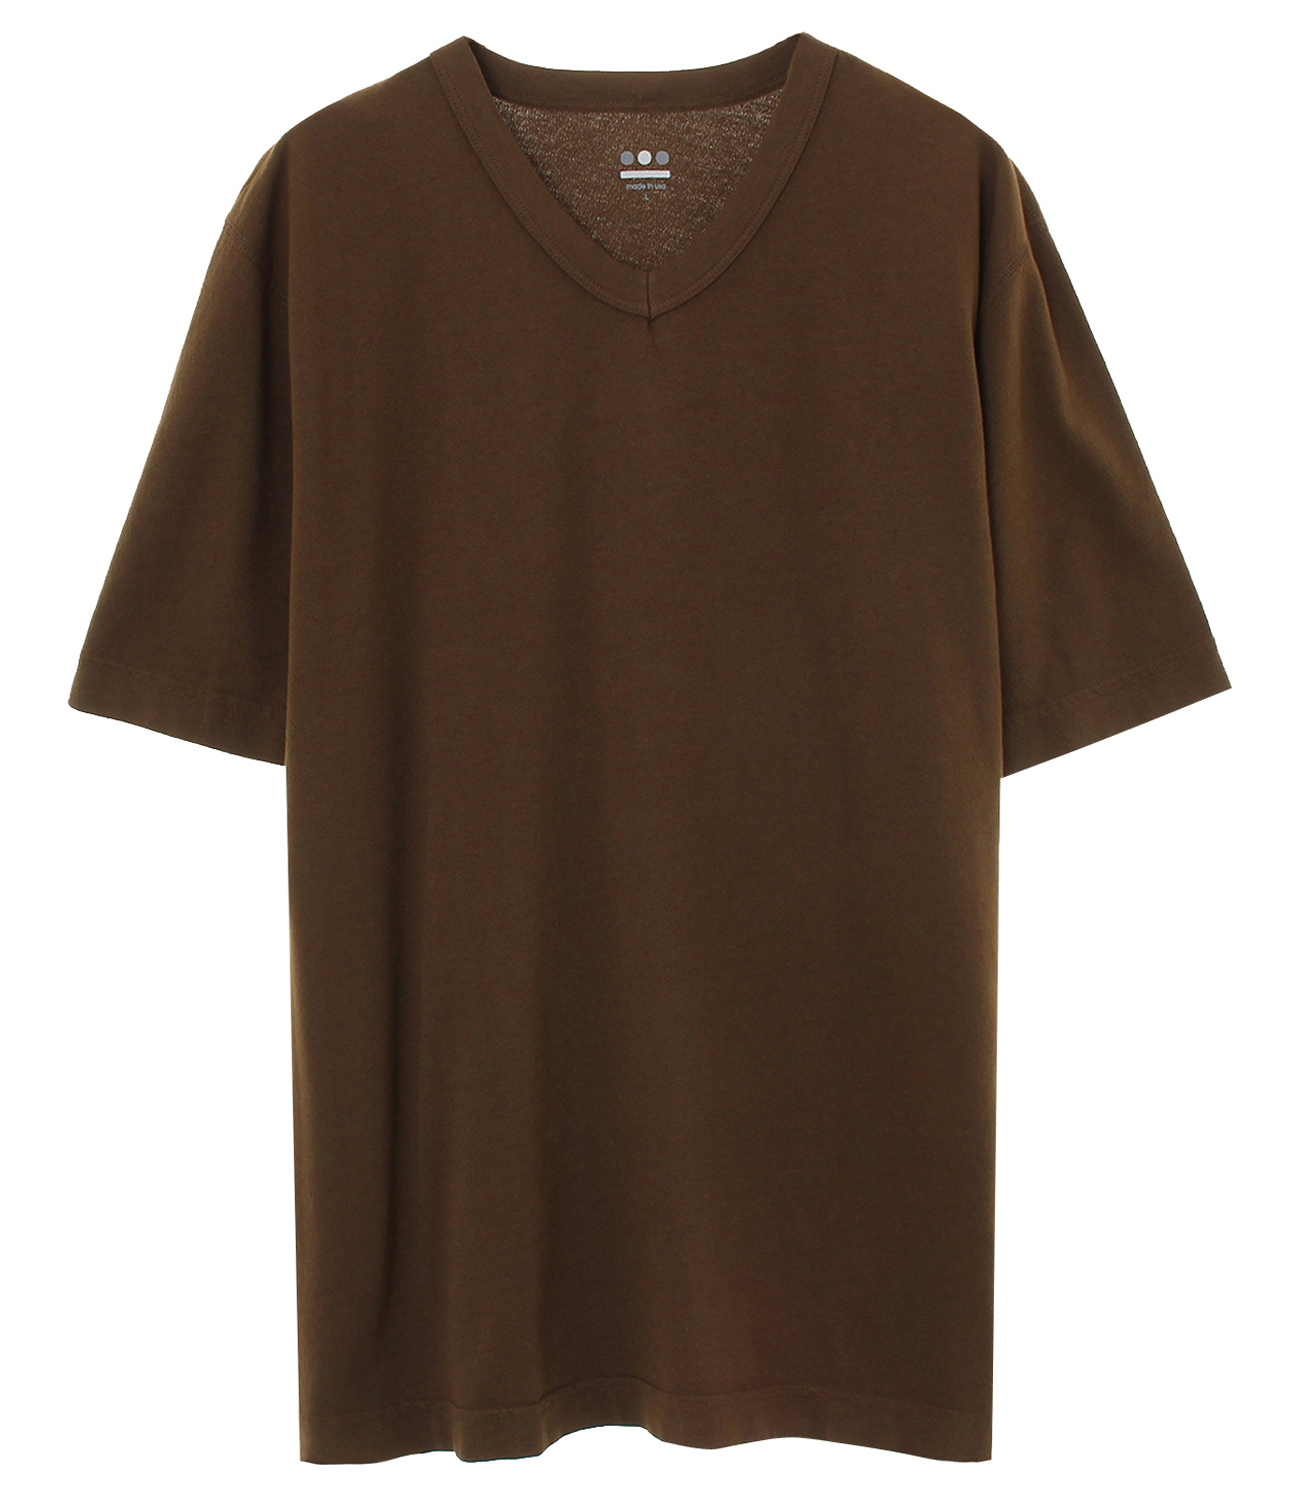 short slv v-neck 詳細画像 olive brunch 1